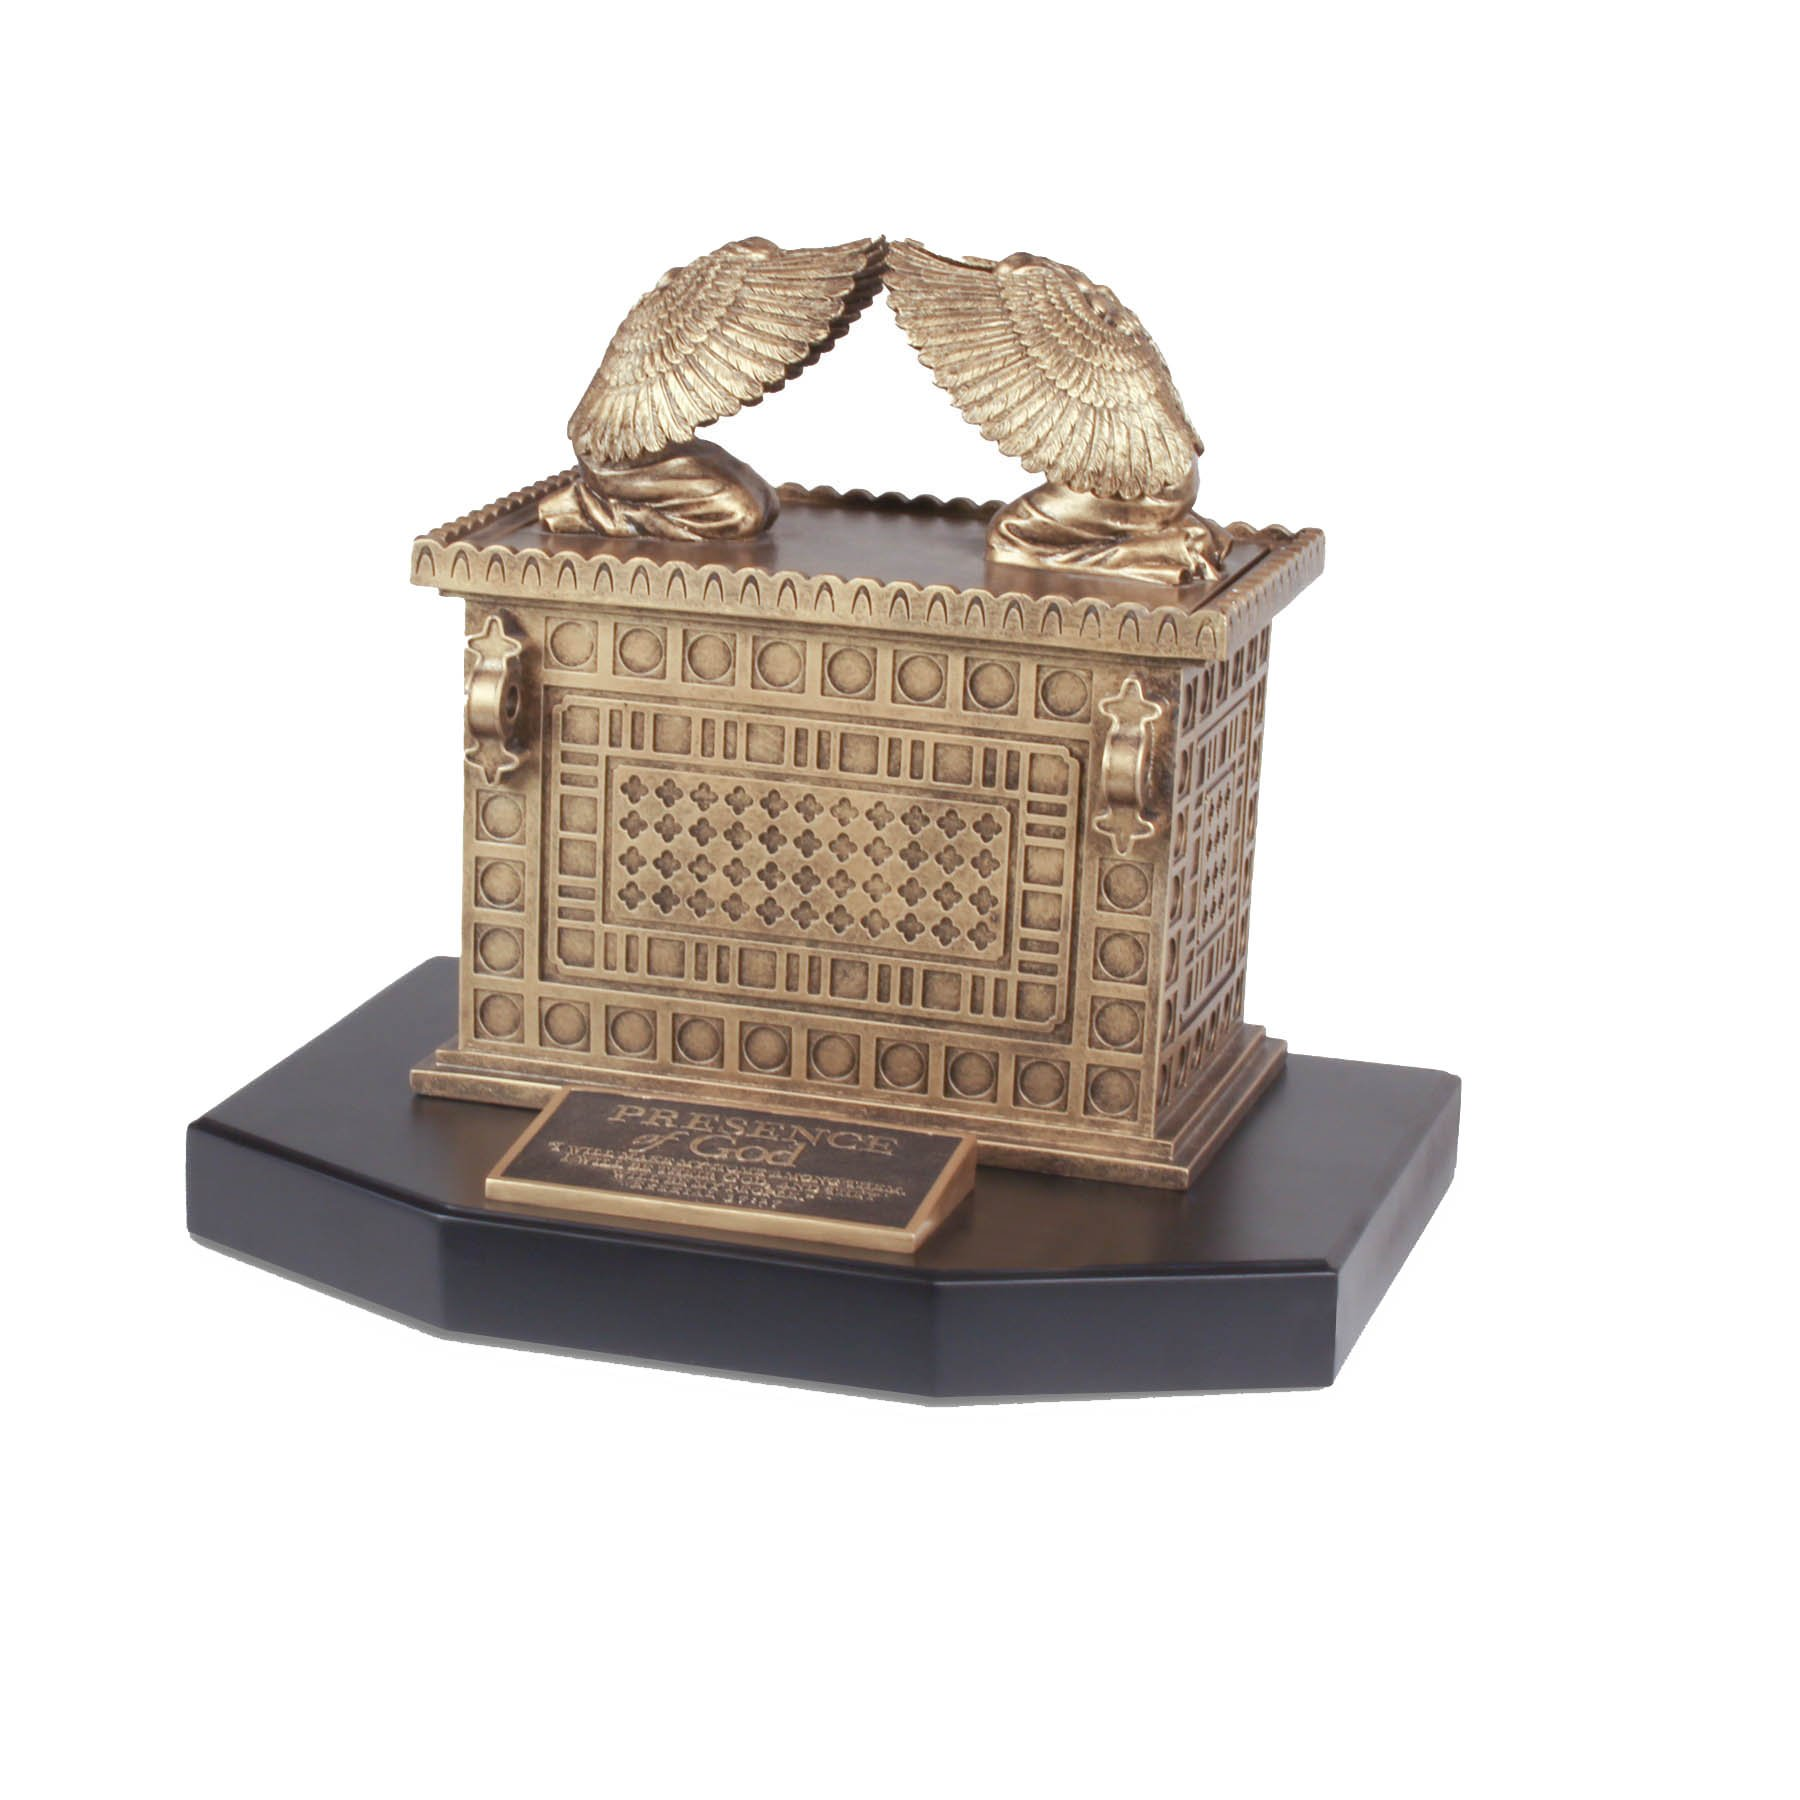 Lighthouse Christian Products Moments of Faith XL Ark of The Covenant Sculpture, 14 x 12 x 10 1/2''